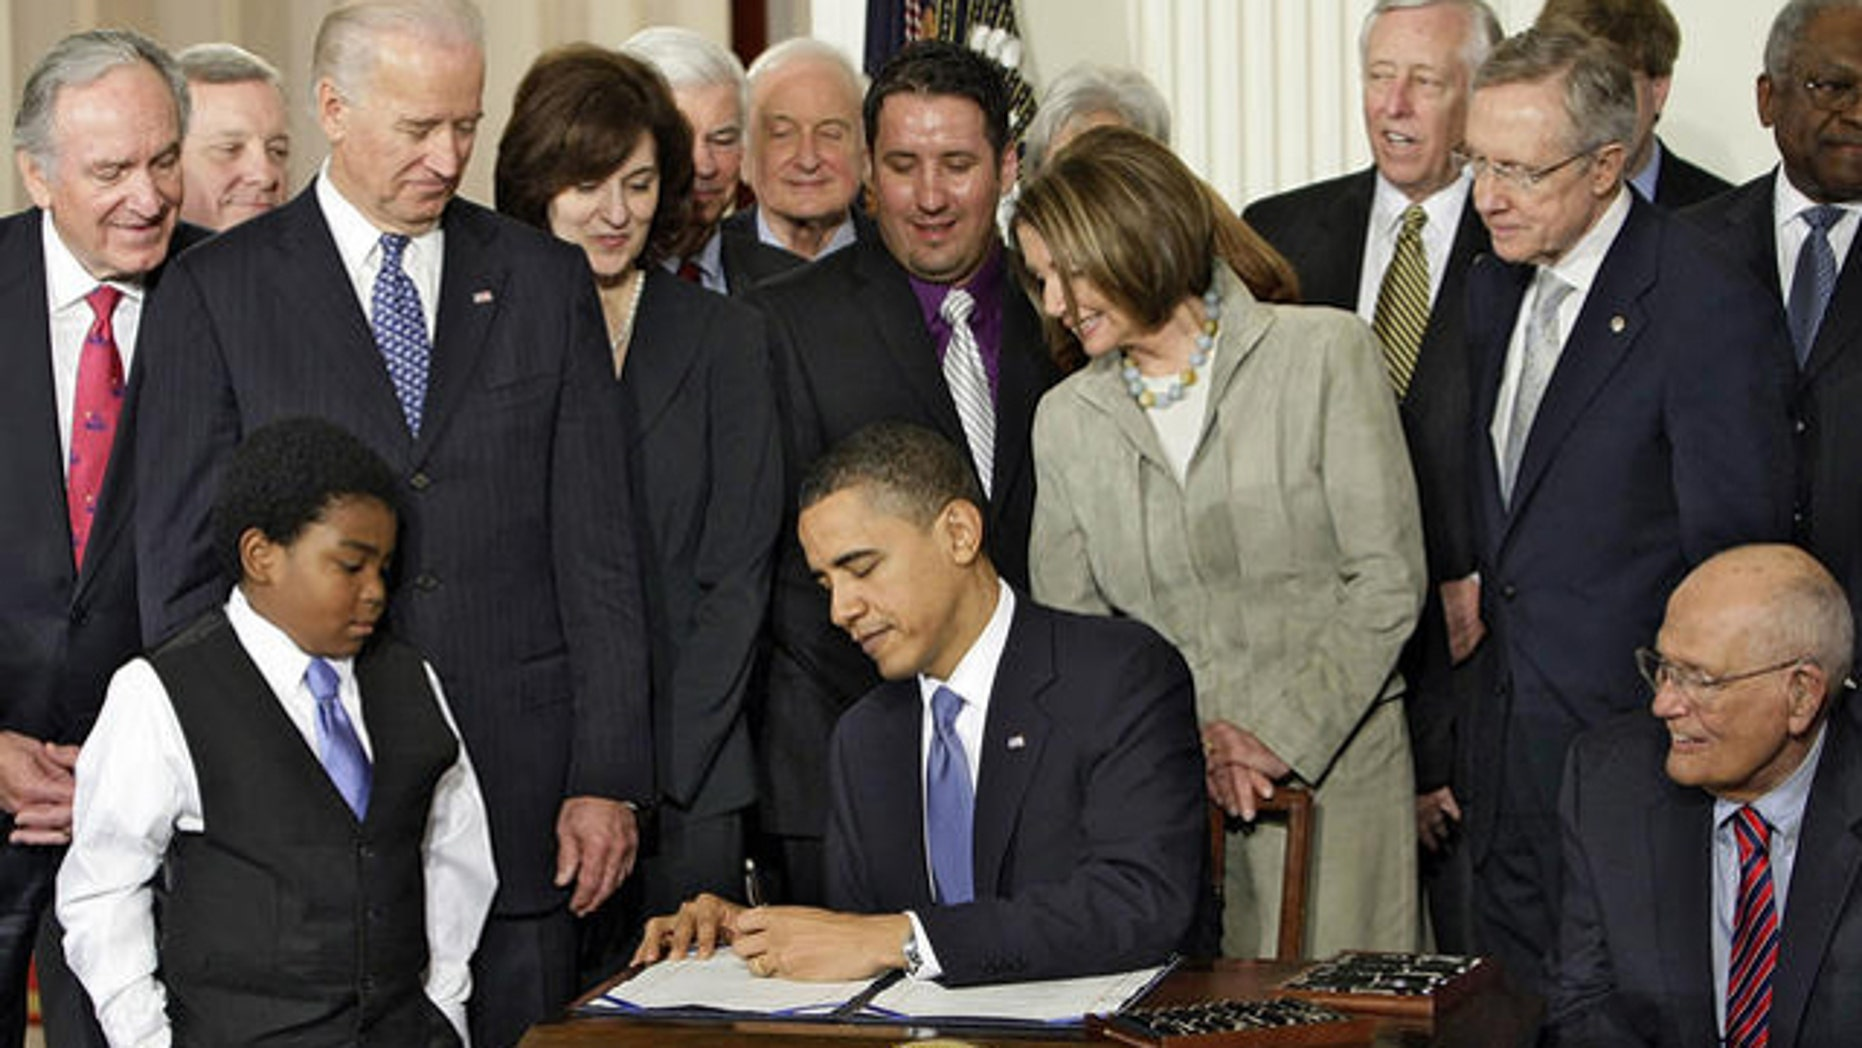 March 23, 2010: President Obama signs sweeping health care legislation into law.